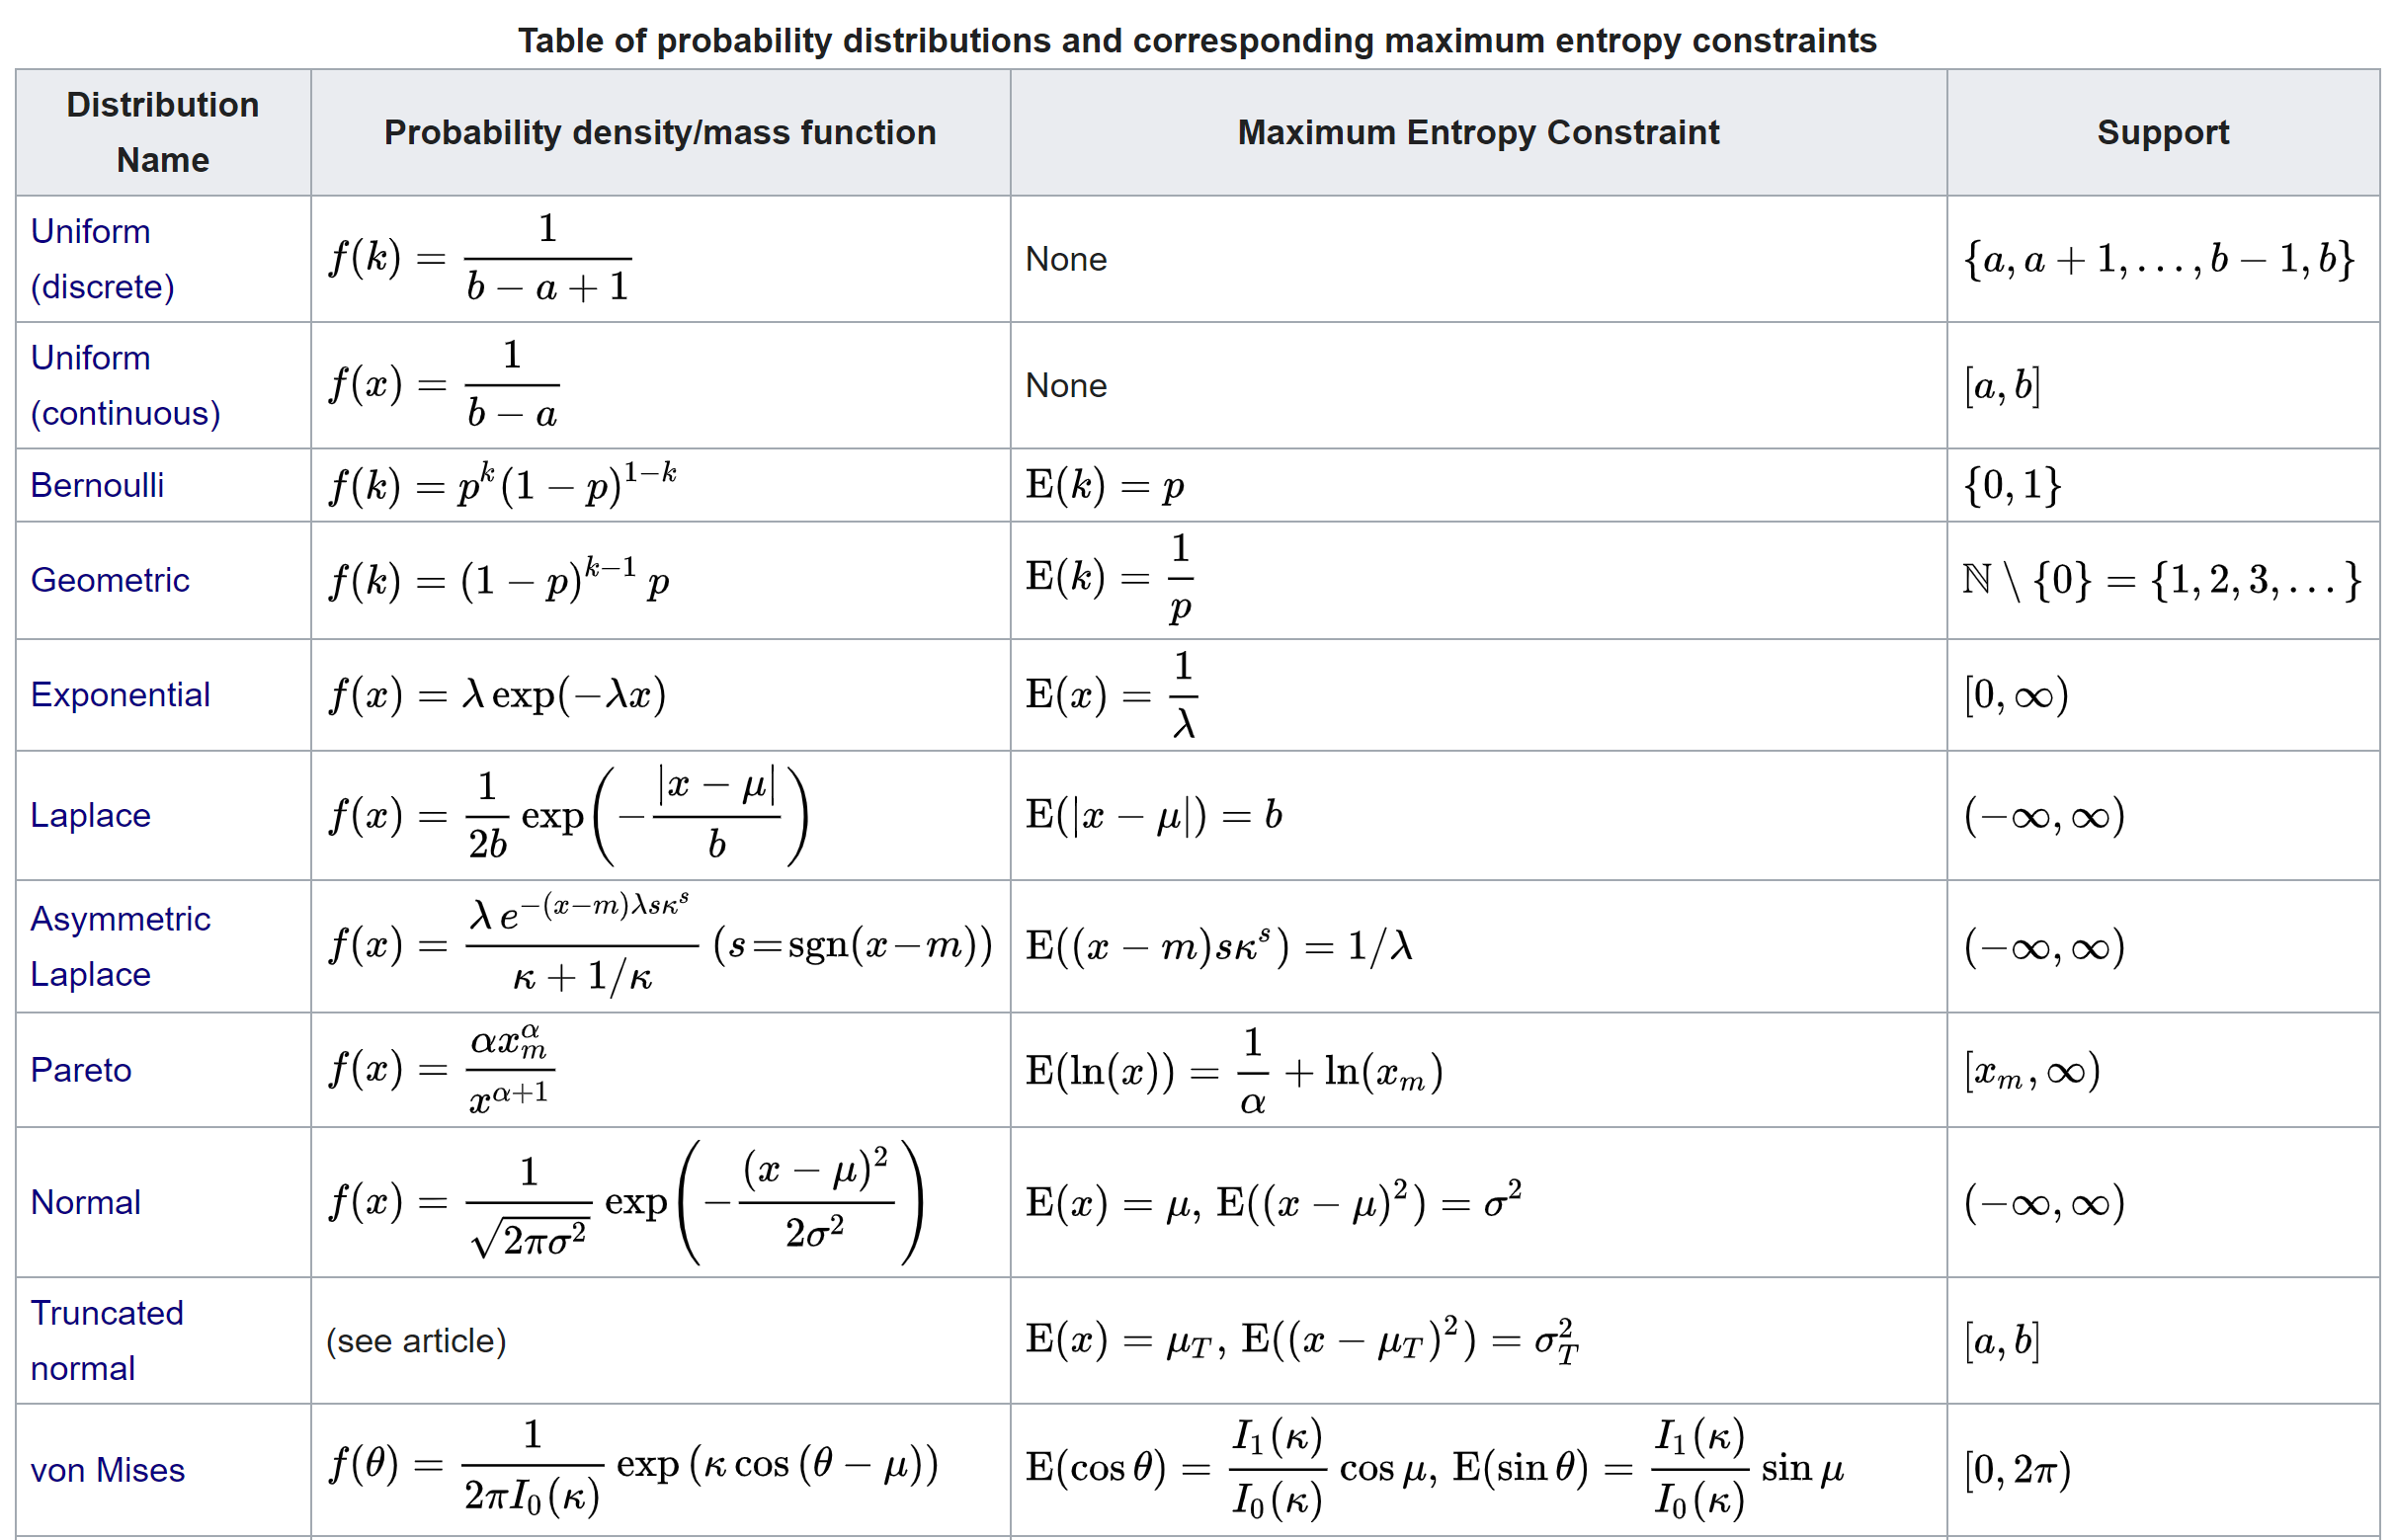 Distributions with maximum entropy